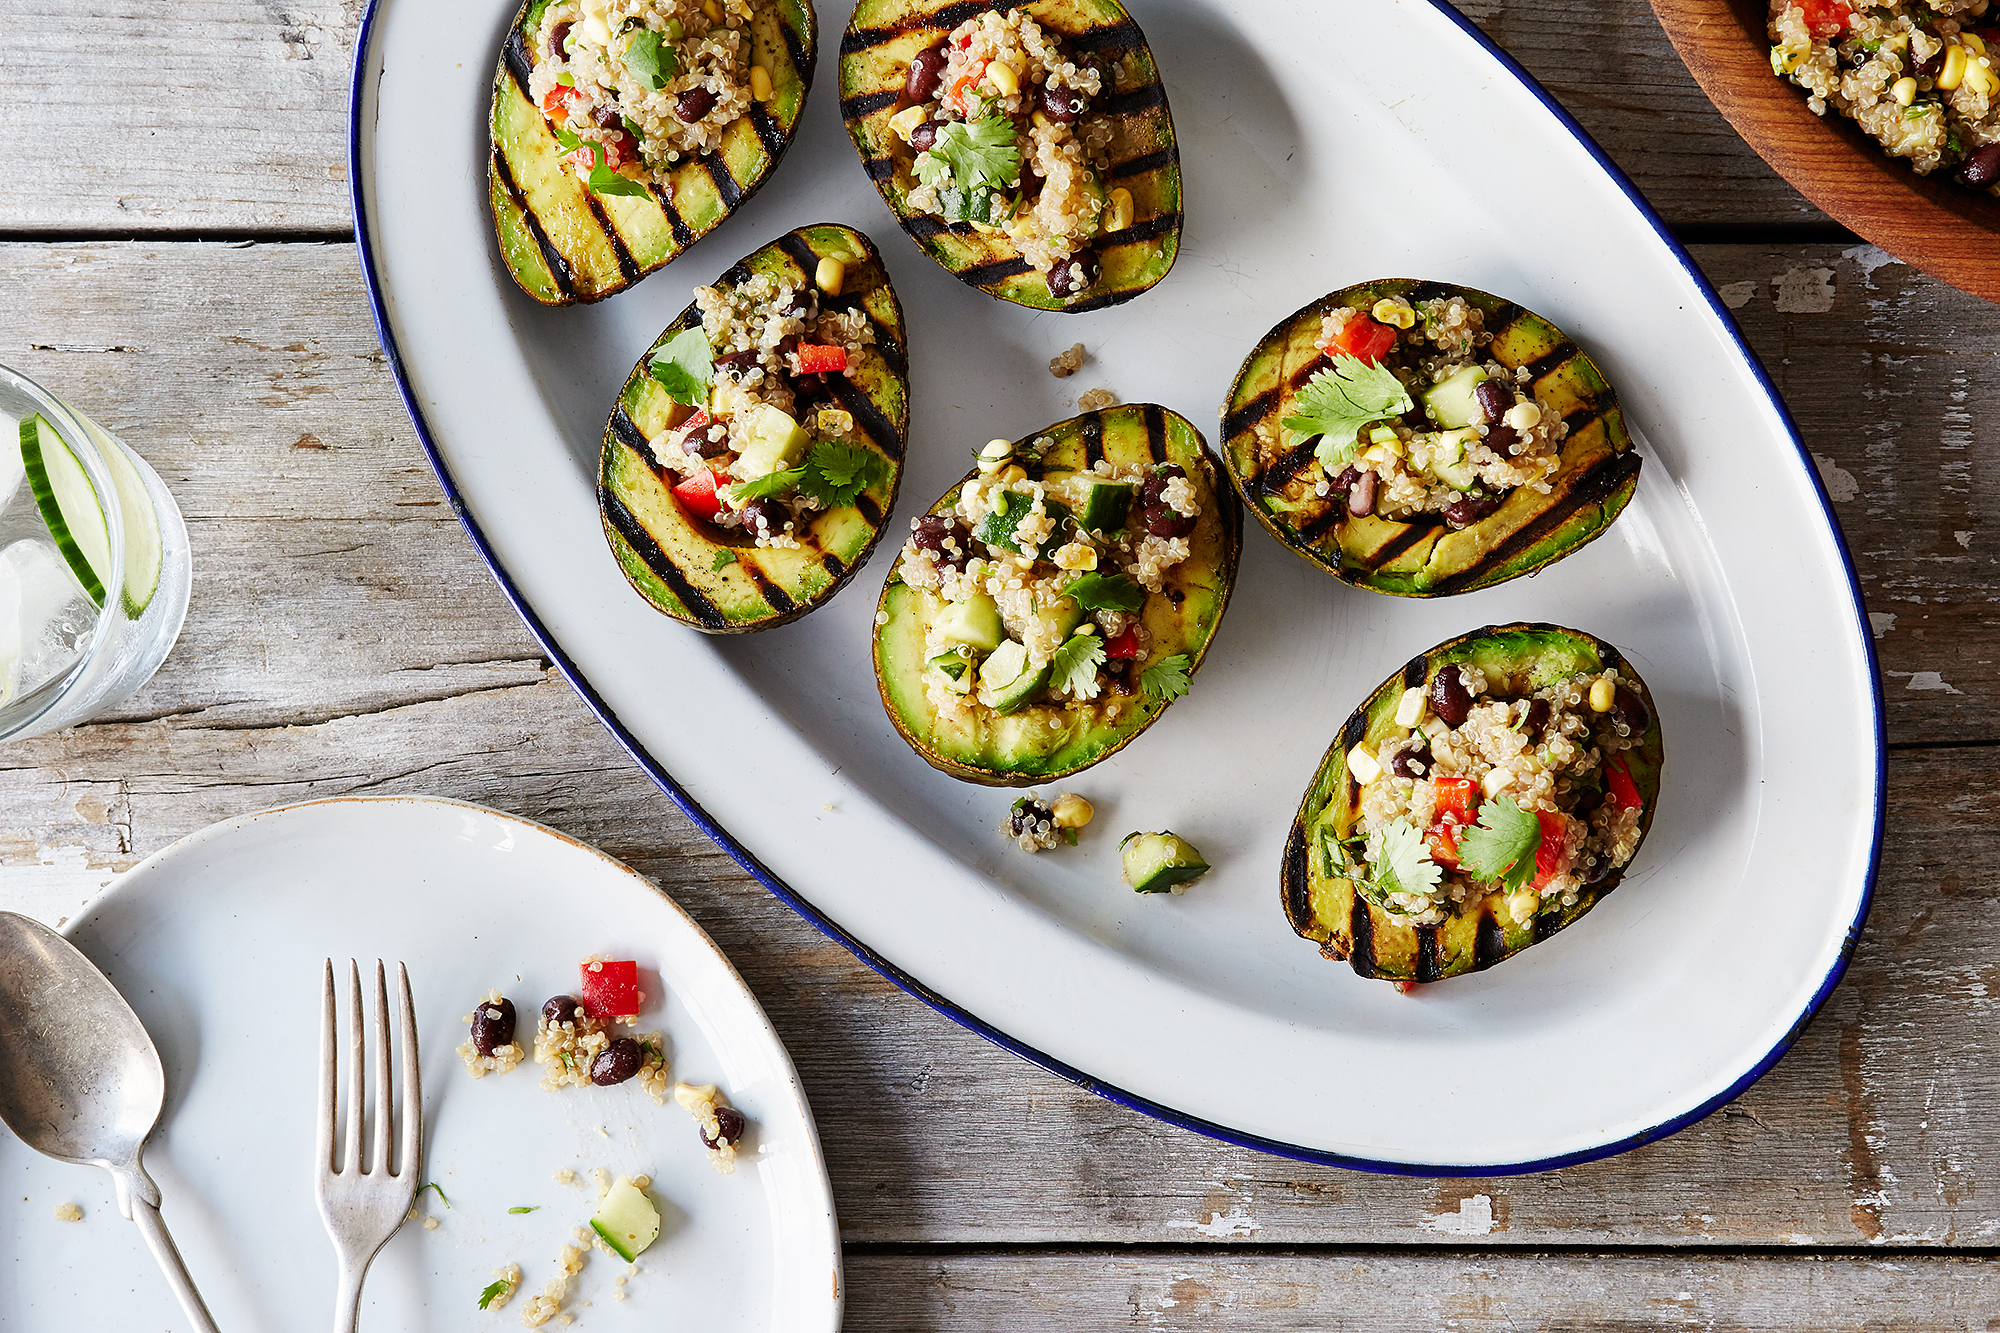 Grilled Avocado Halves with Quinoa and Black Bean Salad Recipe